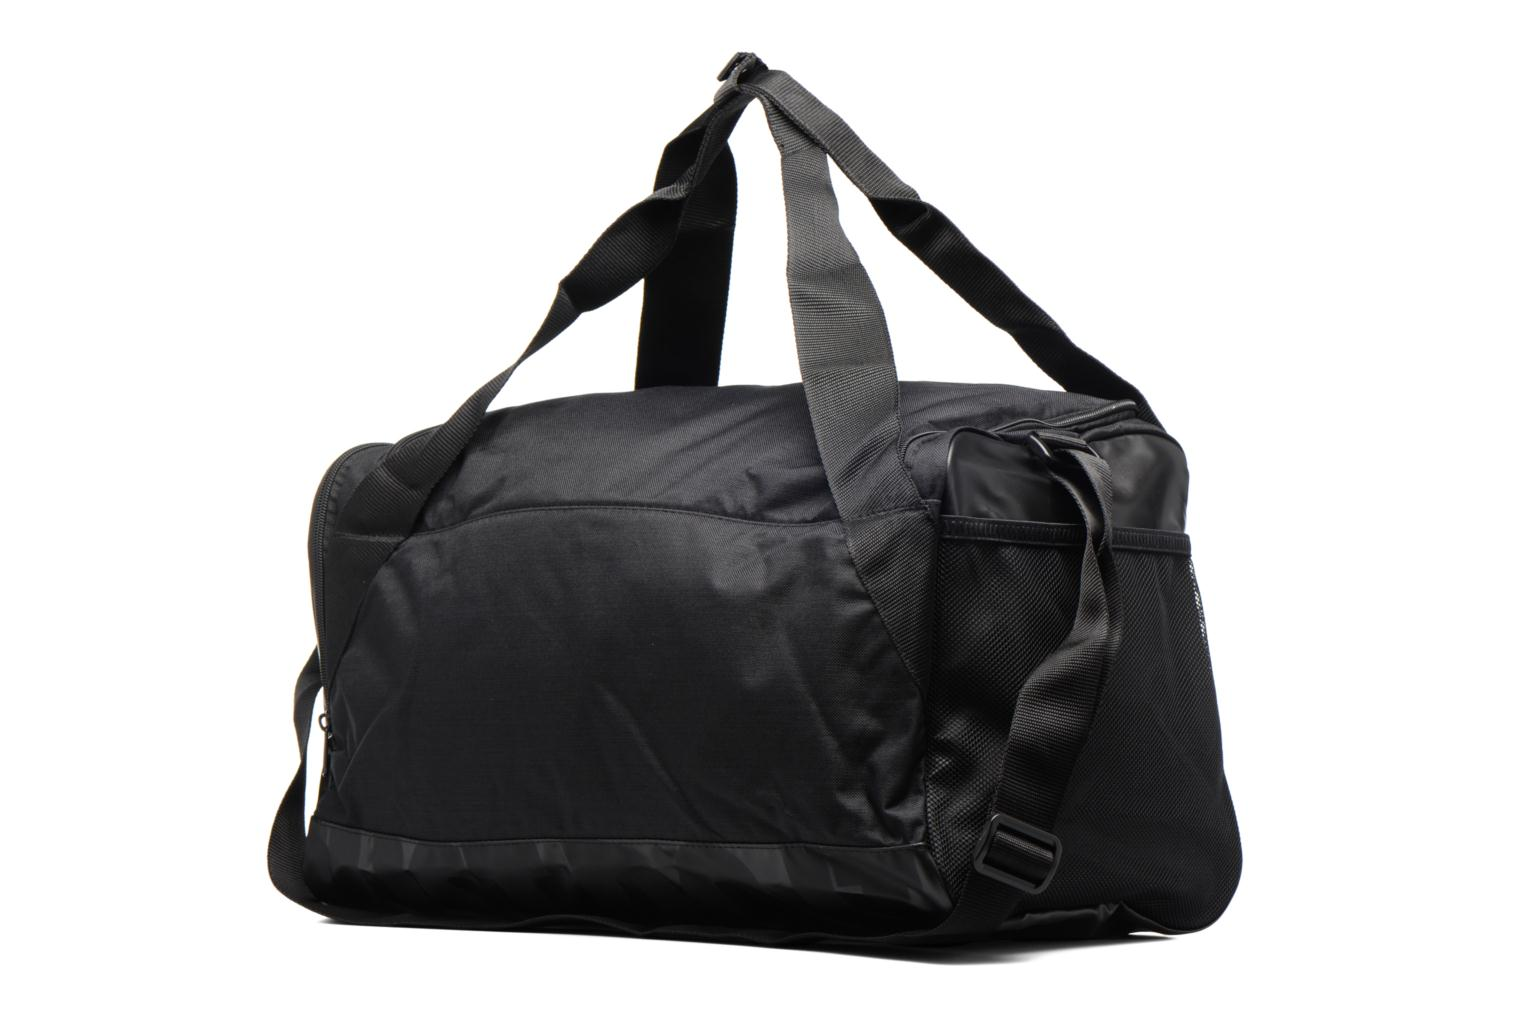 Nike Brasilia Training Duffel Bag S Black/black/white